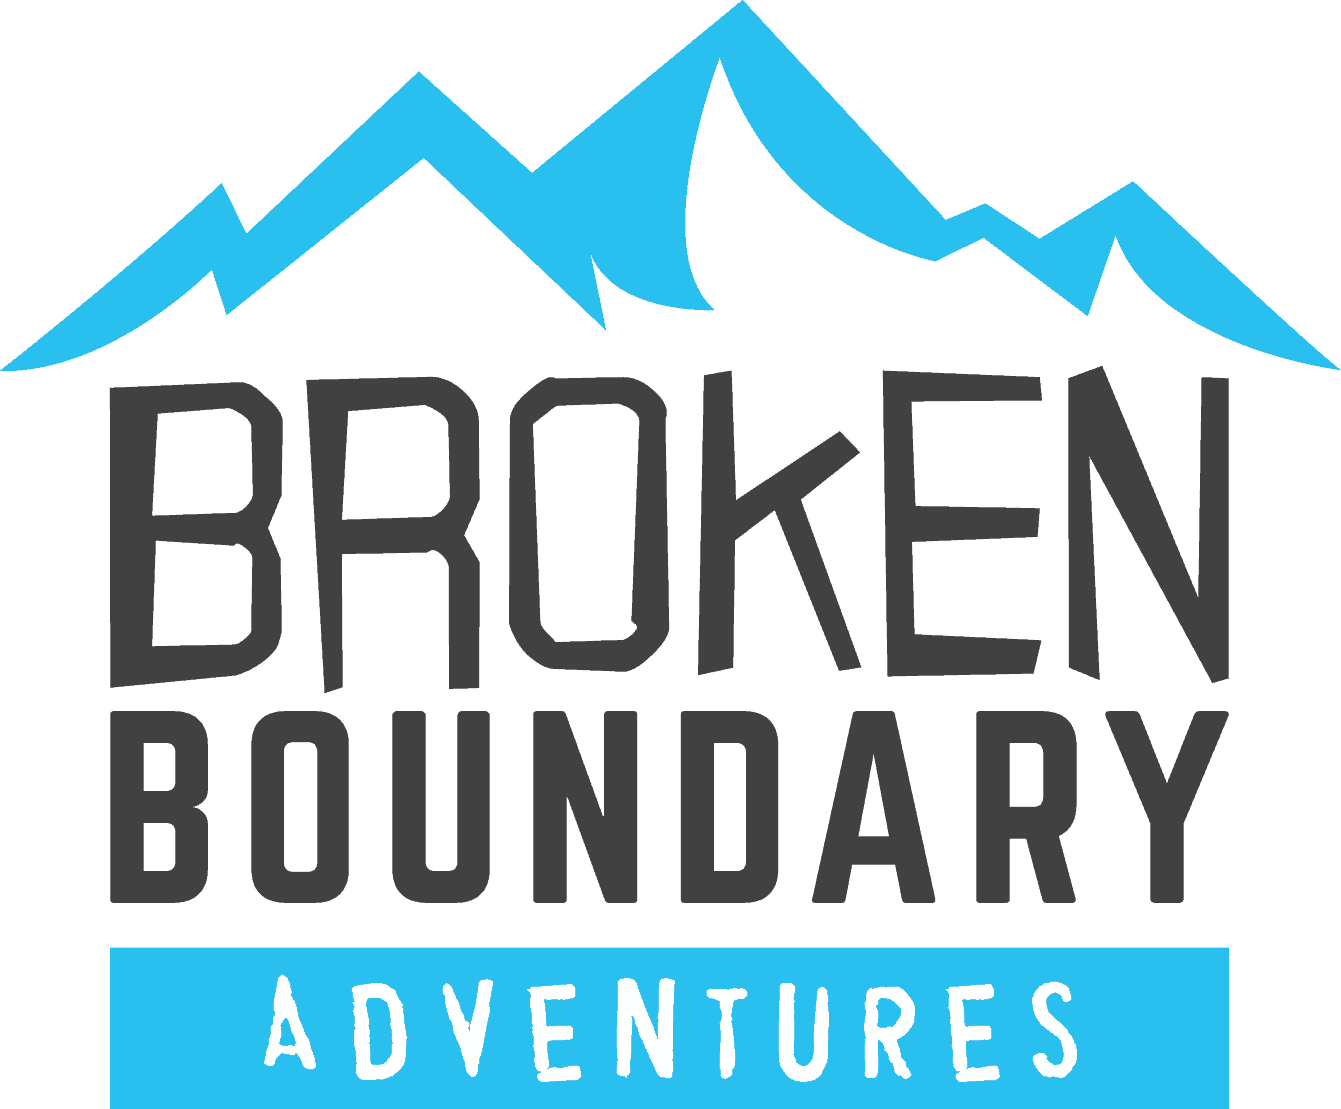 broken-boundary-blue